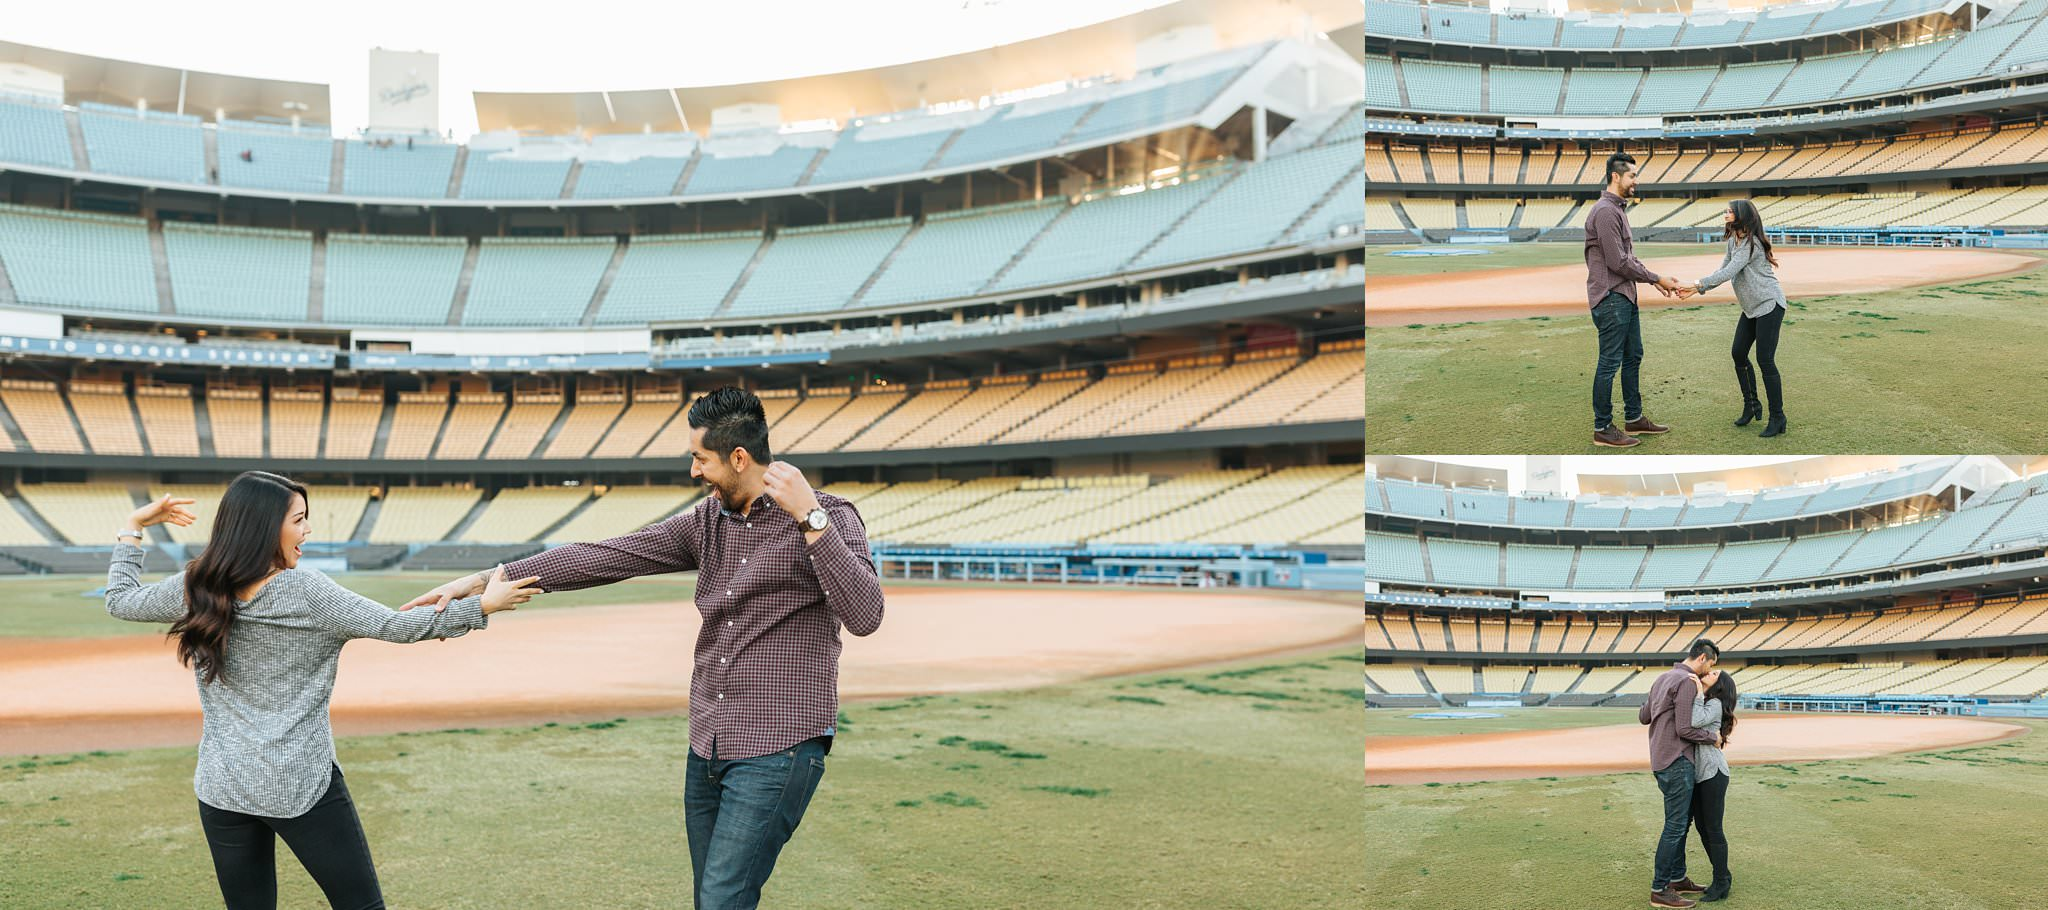 Dancing at Dodger Stadium - Cute and Fun Dodger Stadium Engagement Session - Los Angeles, CA - http://brittneyhannonphotography.com